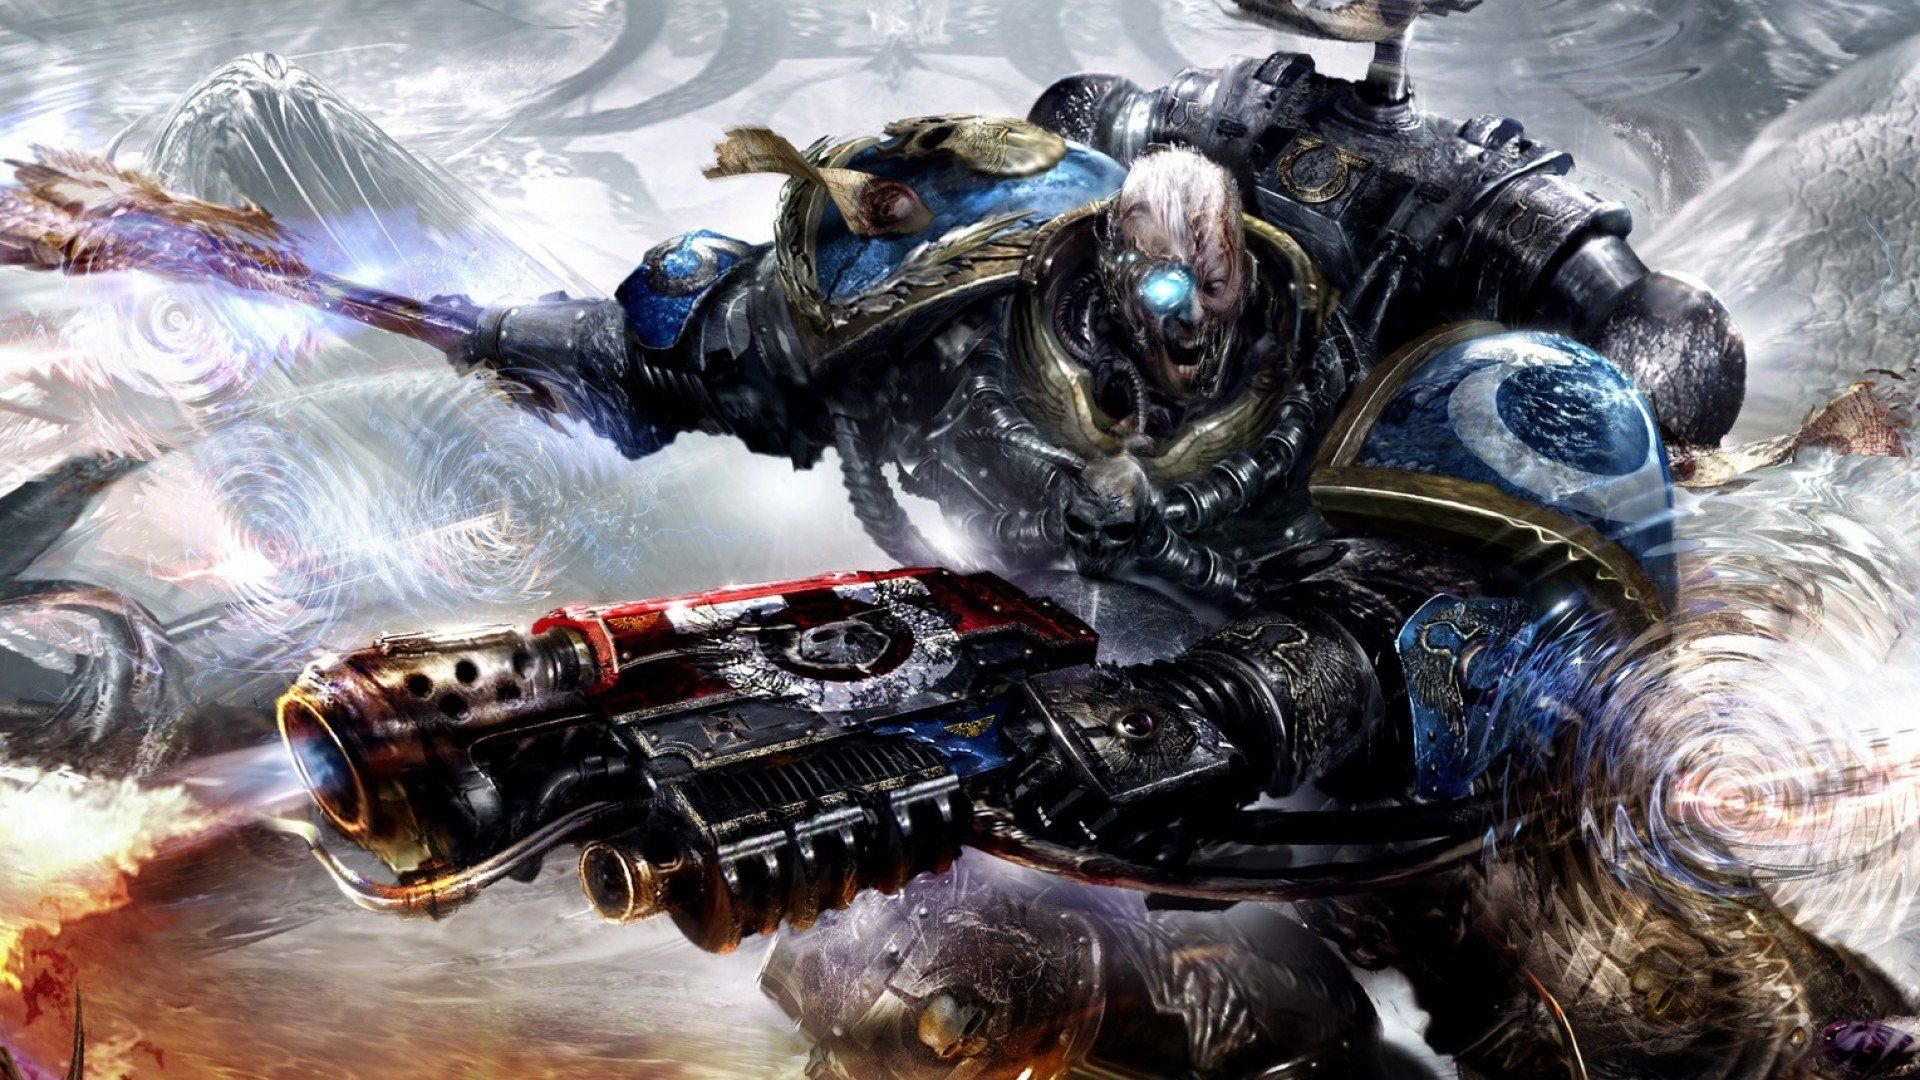 Space Marines Wallpaper Desktop Background In 2020 Warhammer 40k Artwork Warhammer 40k Space Marine Art